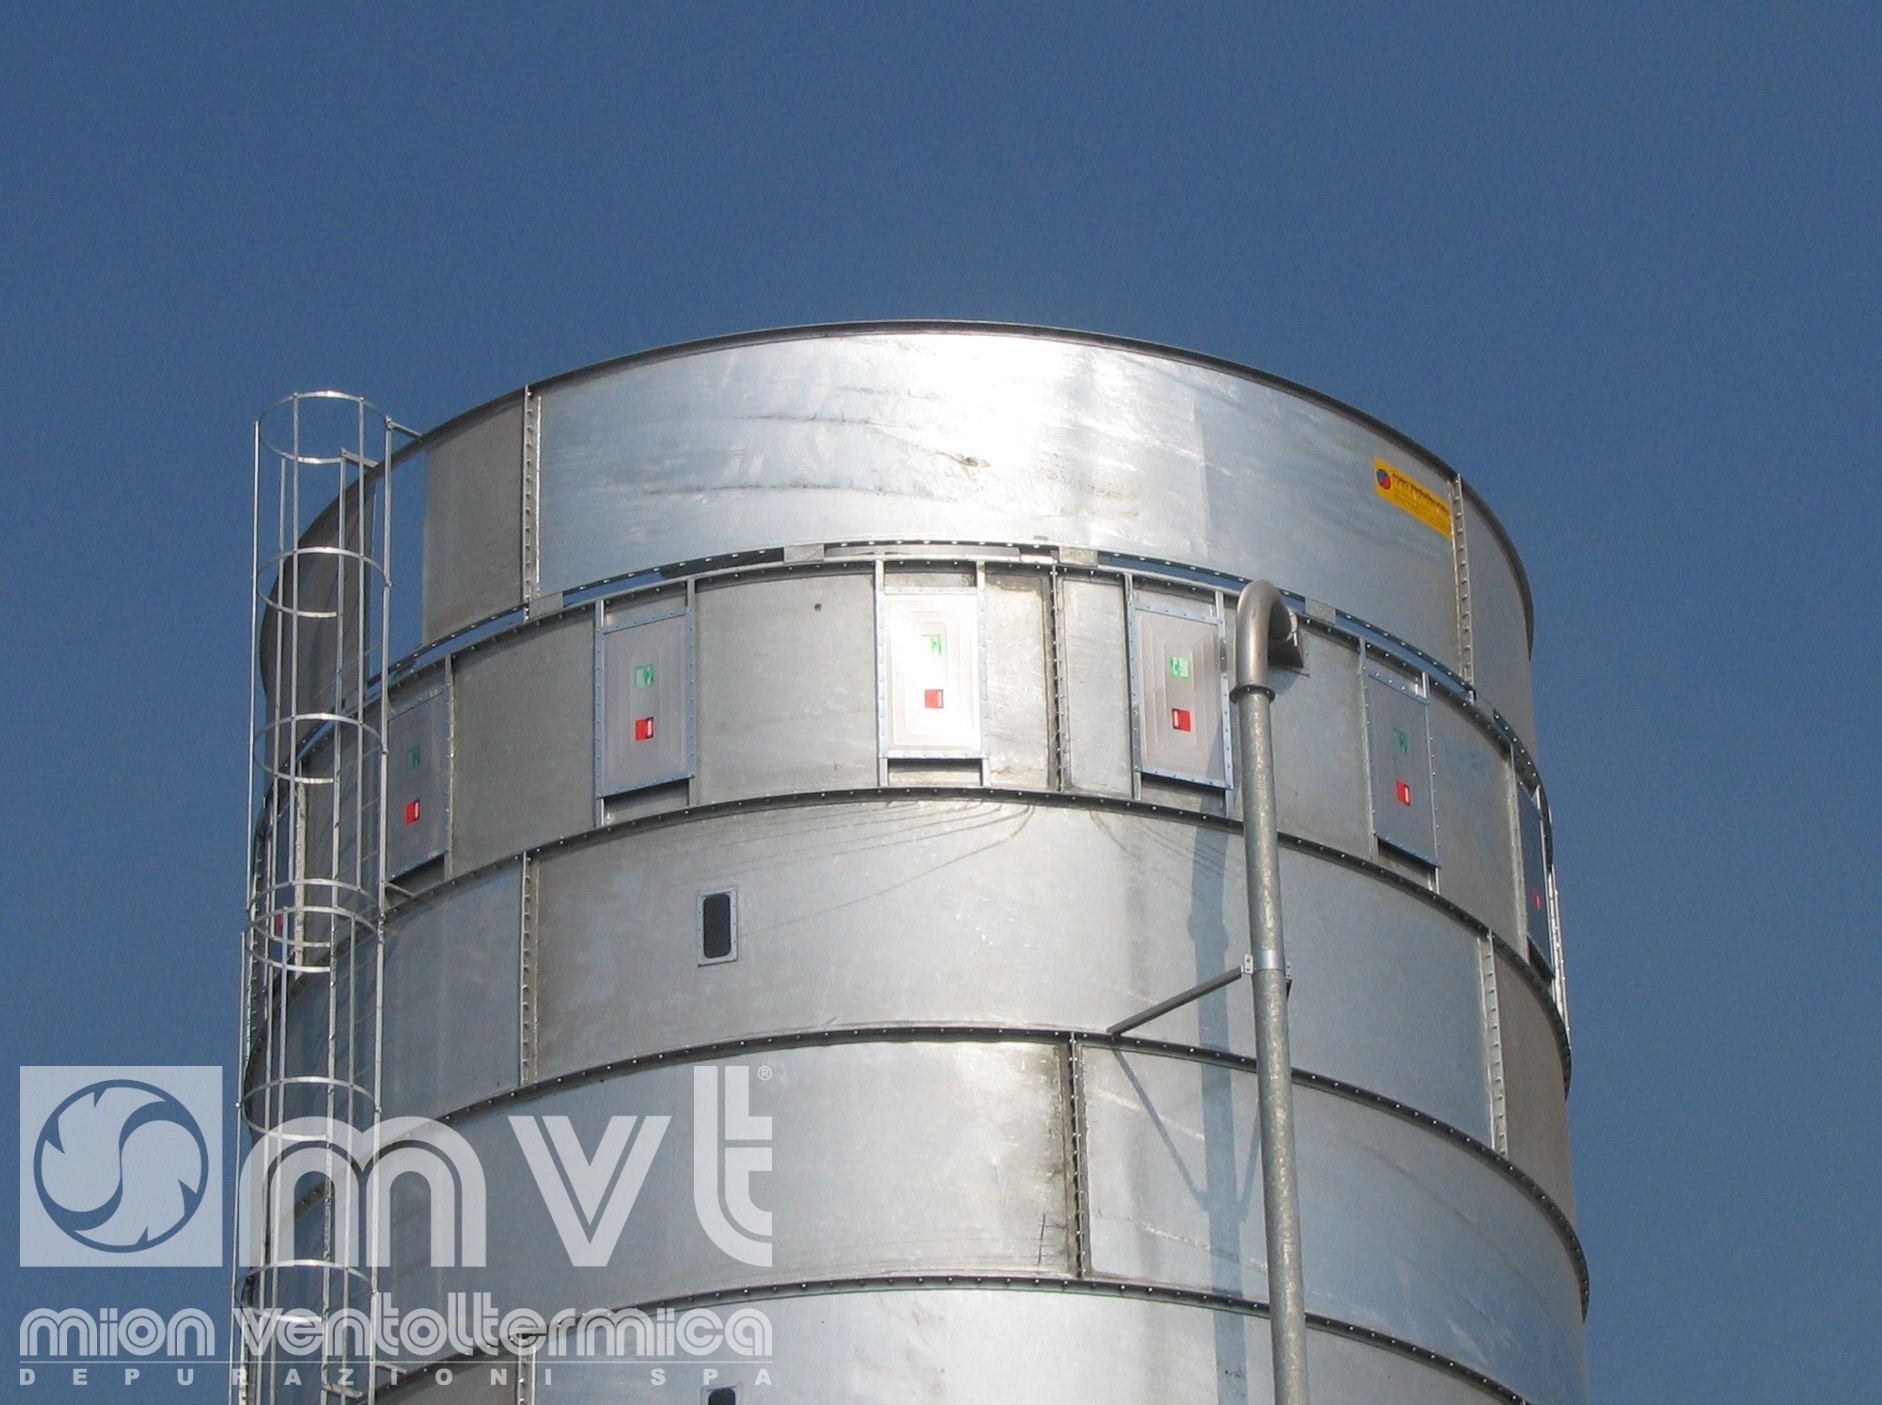 Ring Shell Silo Mion Ventoltermica